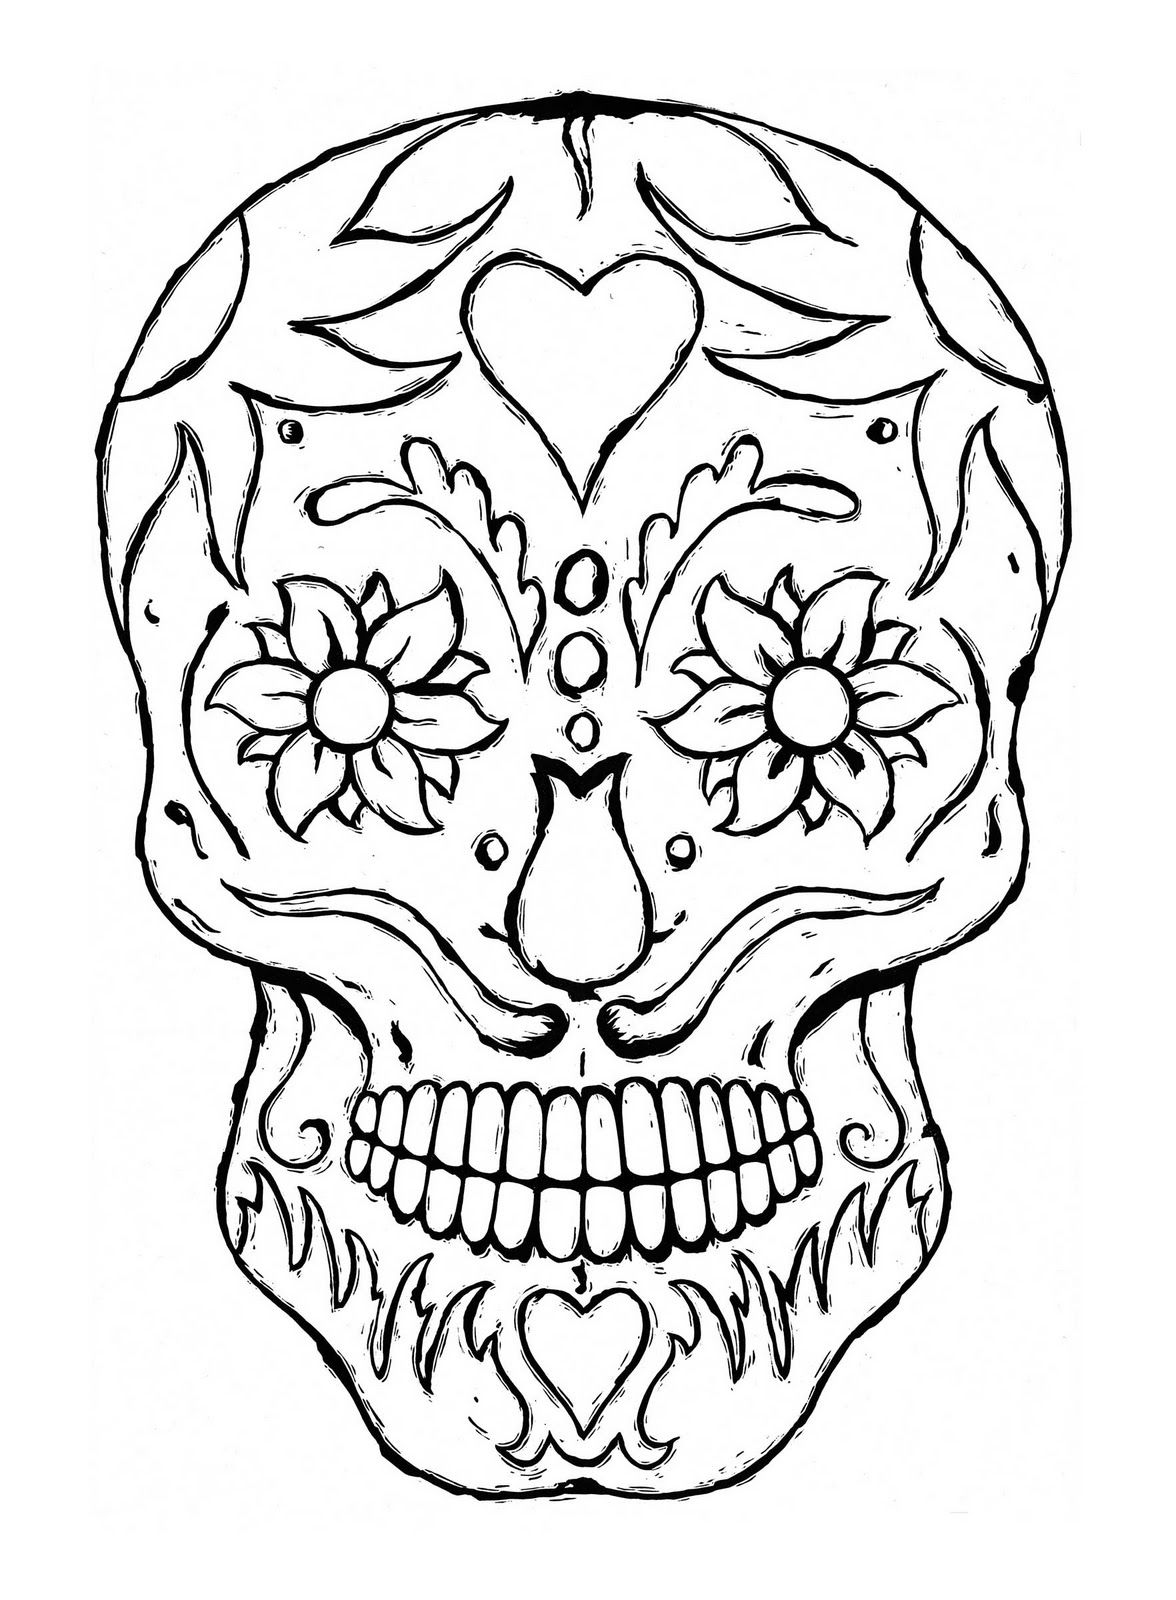 Free Printable Skull Coloring Pages For Kids | ~Sugar ...